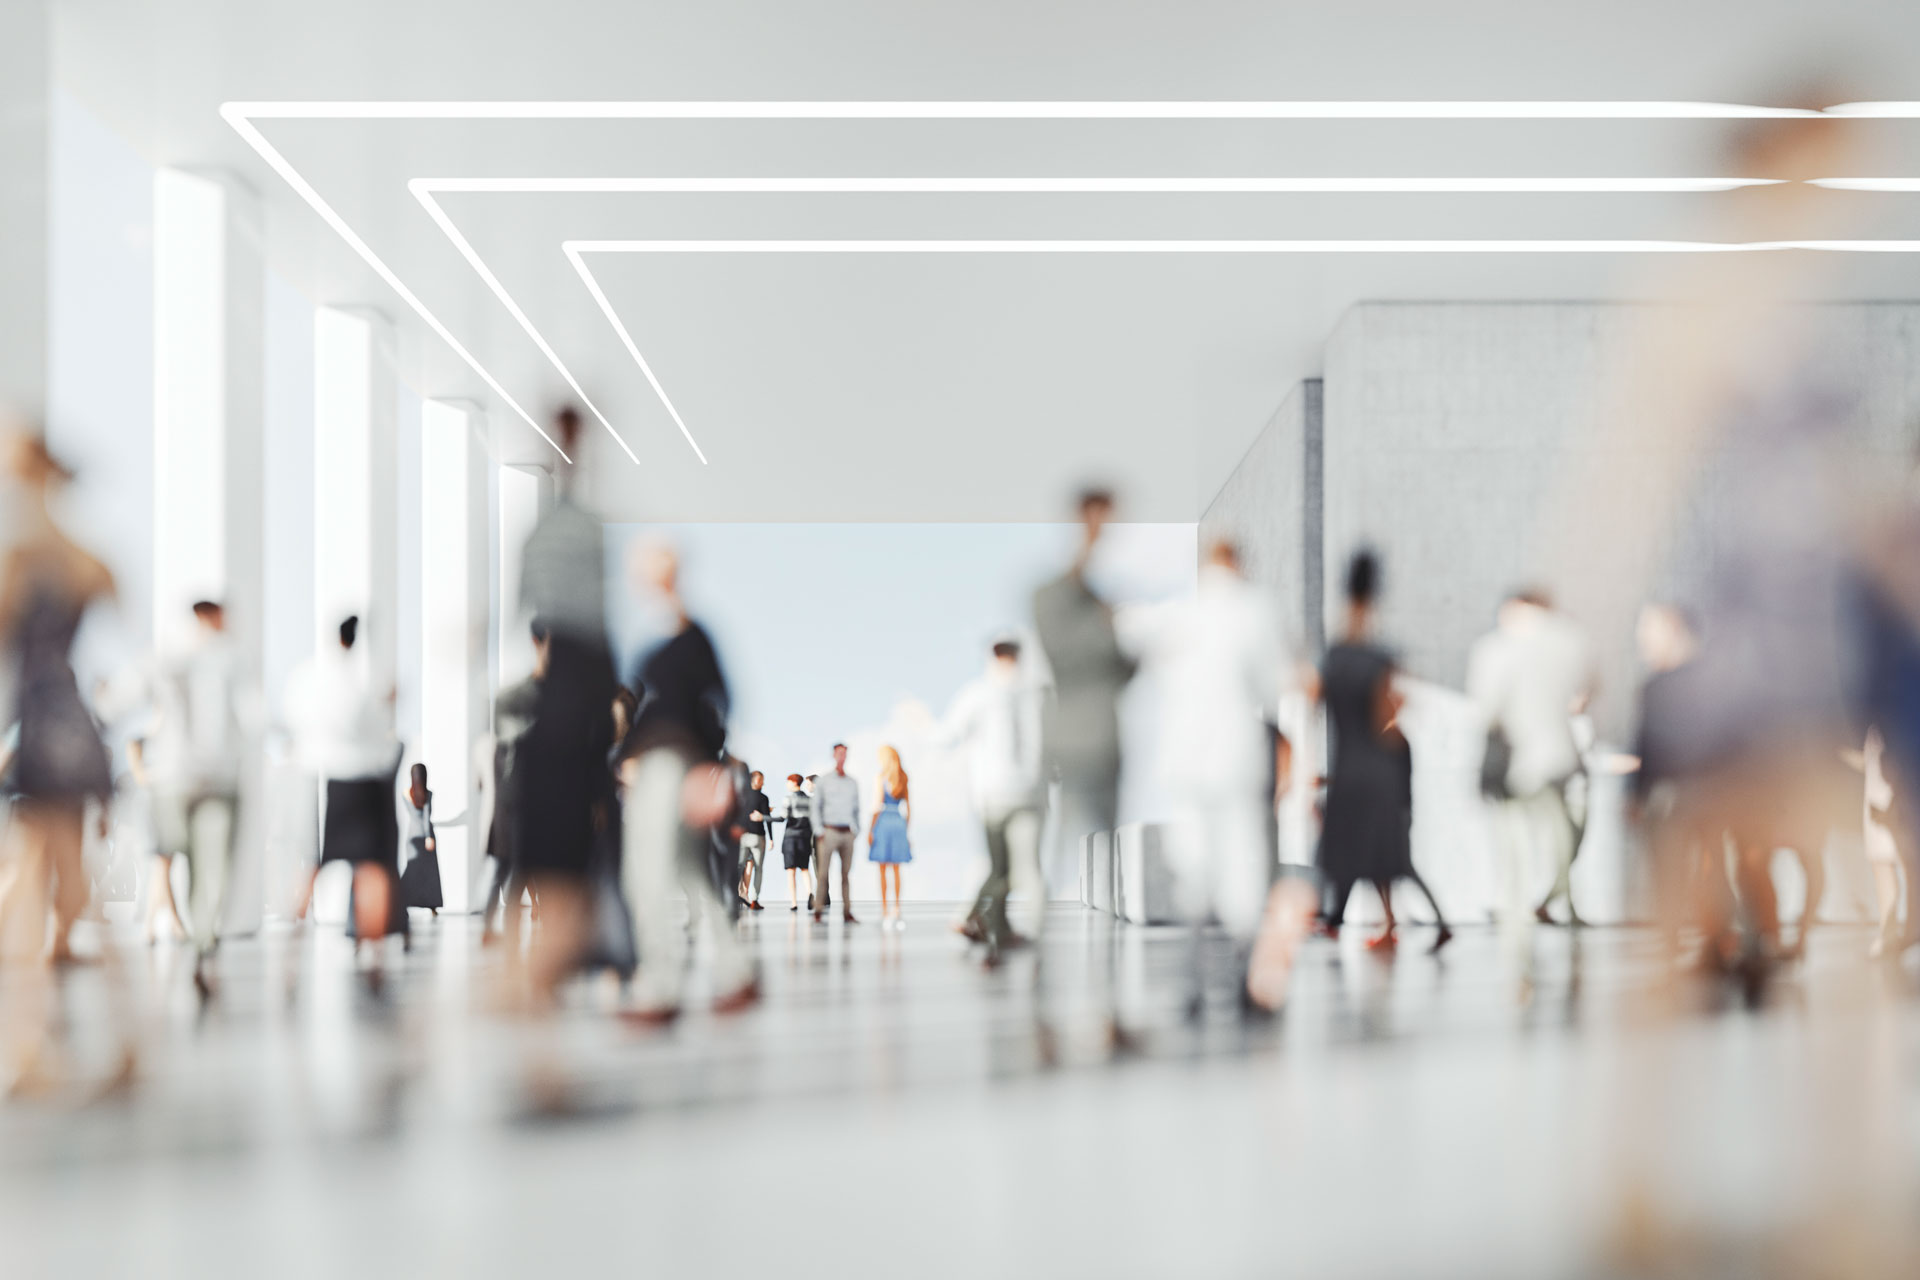 Image of people moving through a workplace.